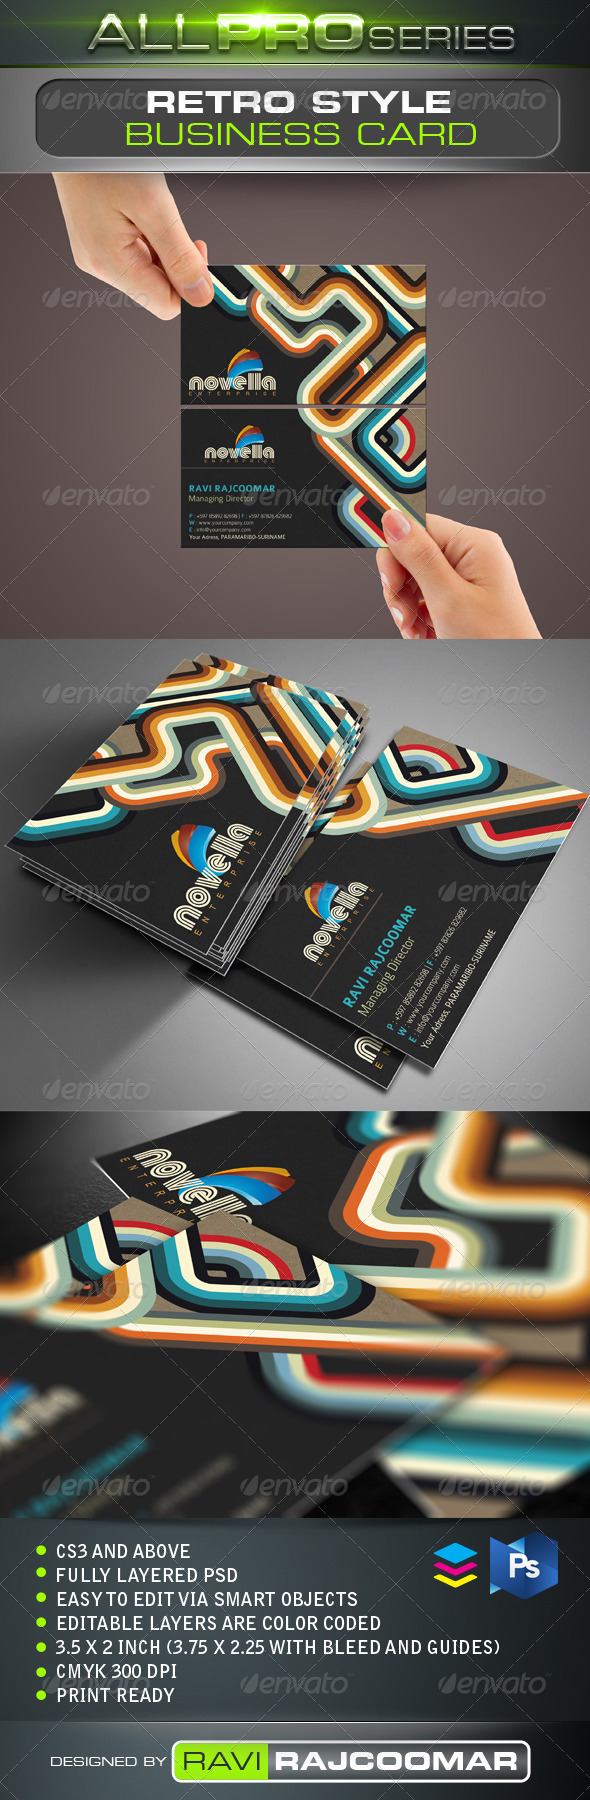 Retro Style Business Card - Business Cards Print Templates